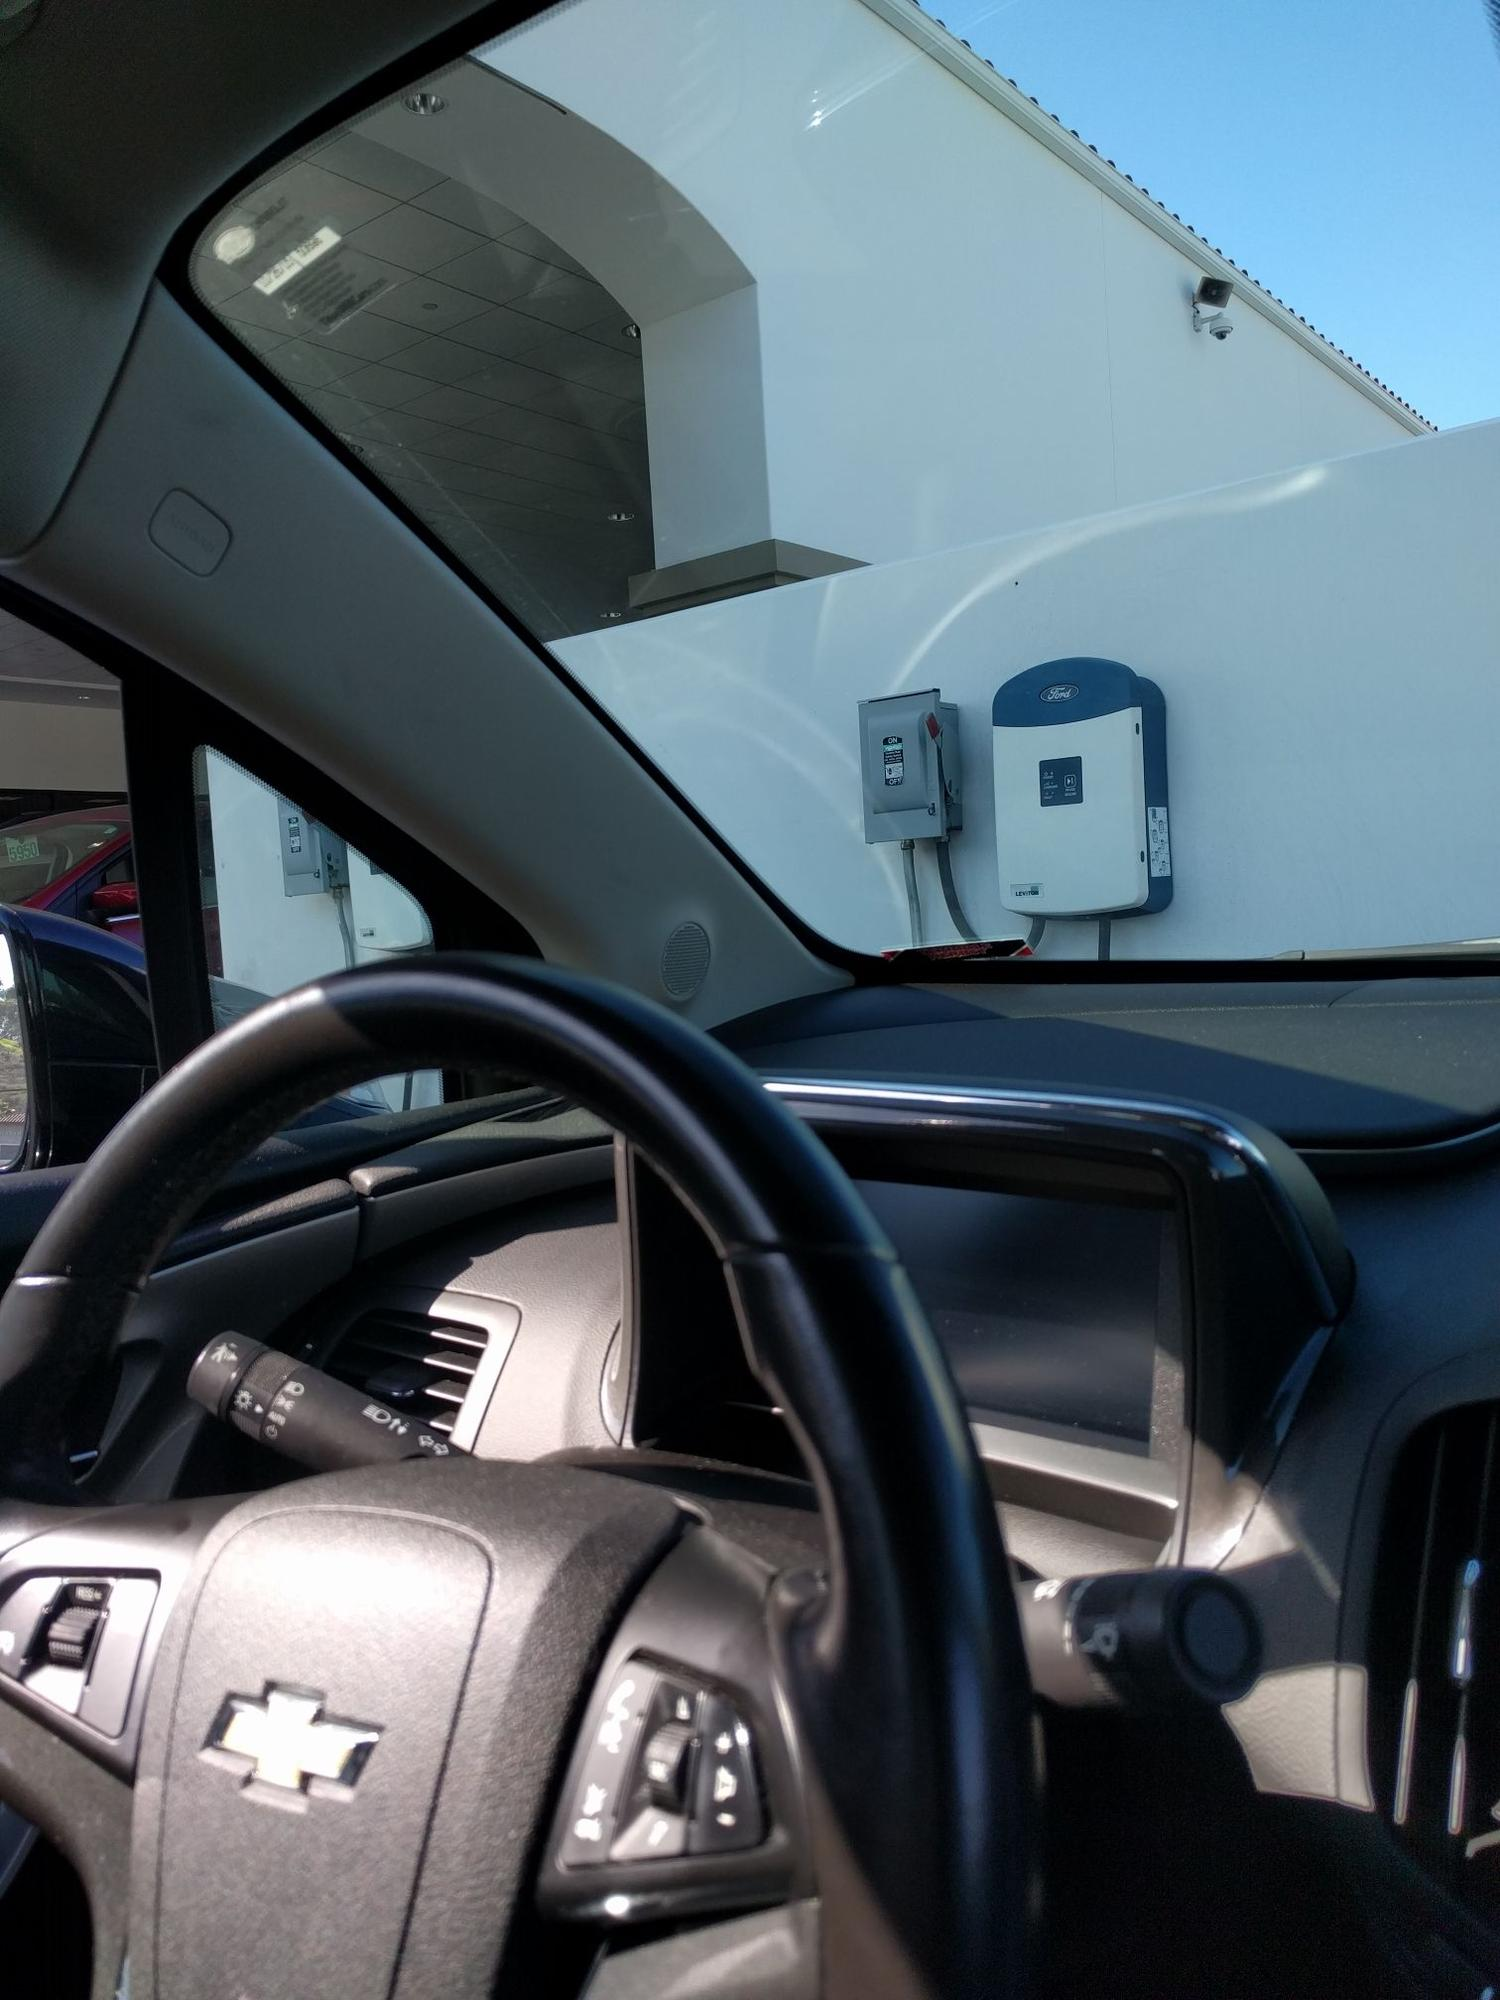 Tuttle Ford Capistrano Free Electric Car Charging 25 Check